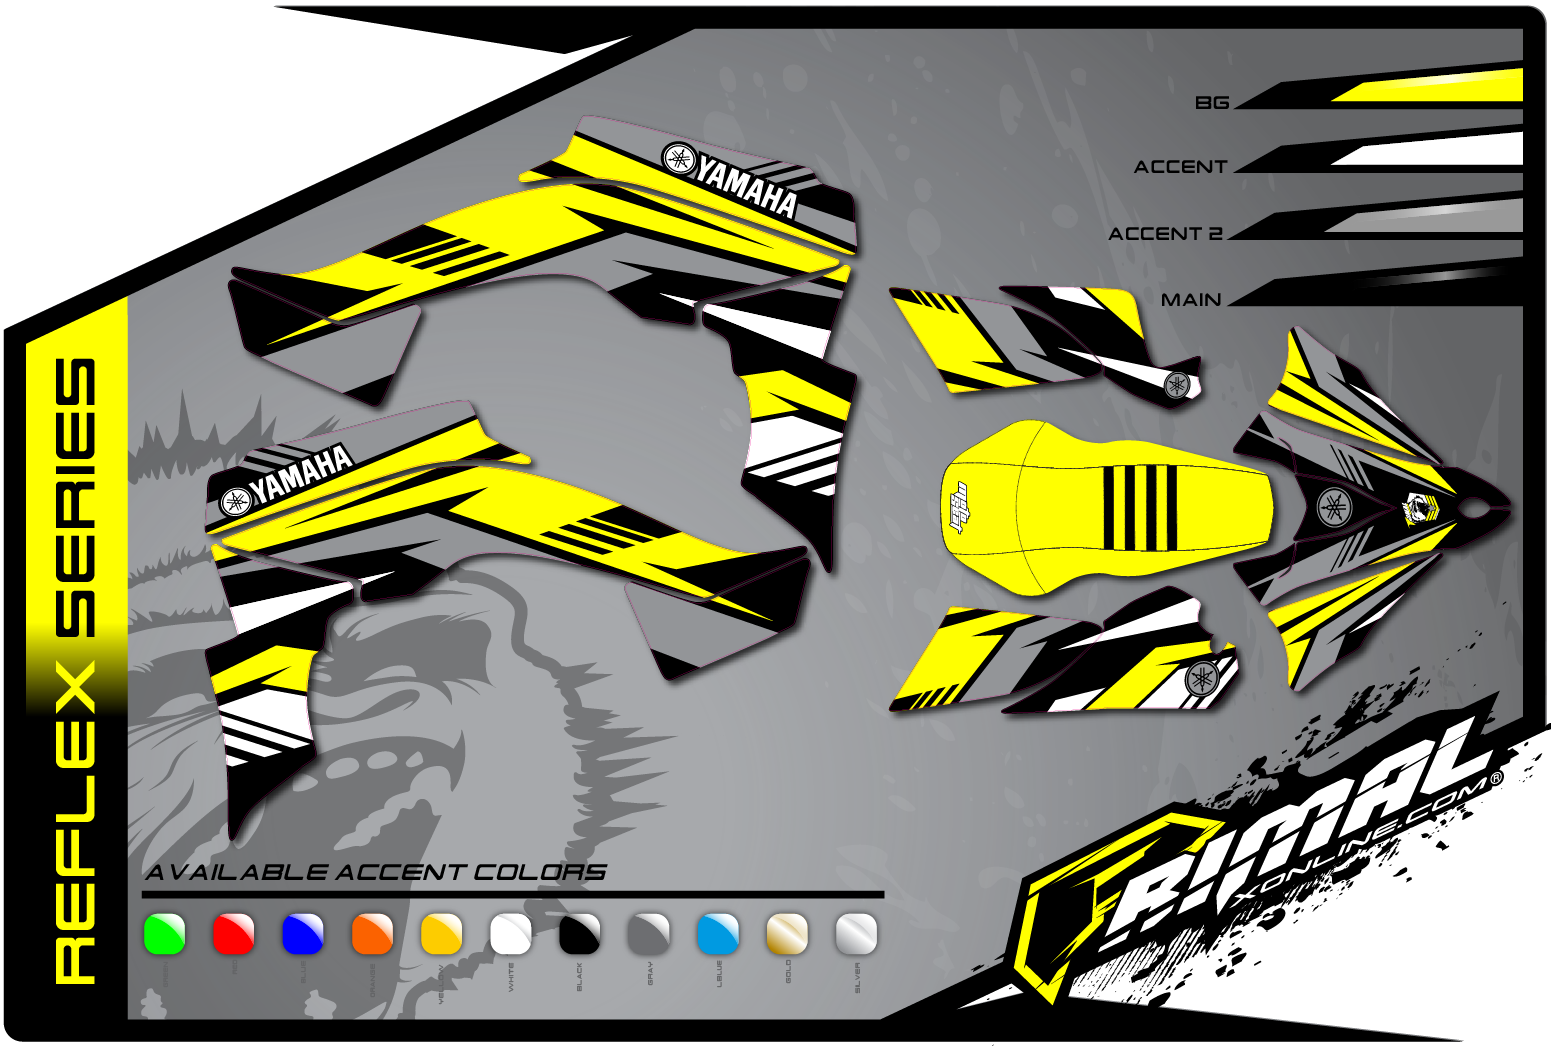 primal-x-motorsports-mx-graphics-atv-graphics-quad-graphics-motocross-graphics-reflex-series